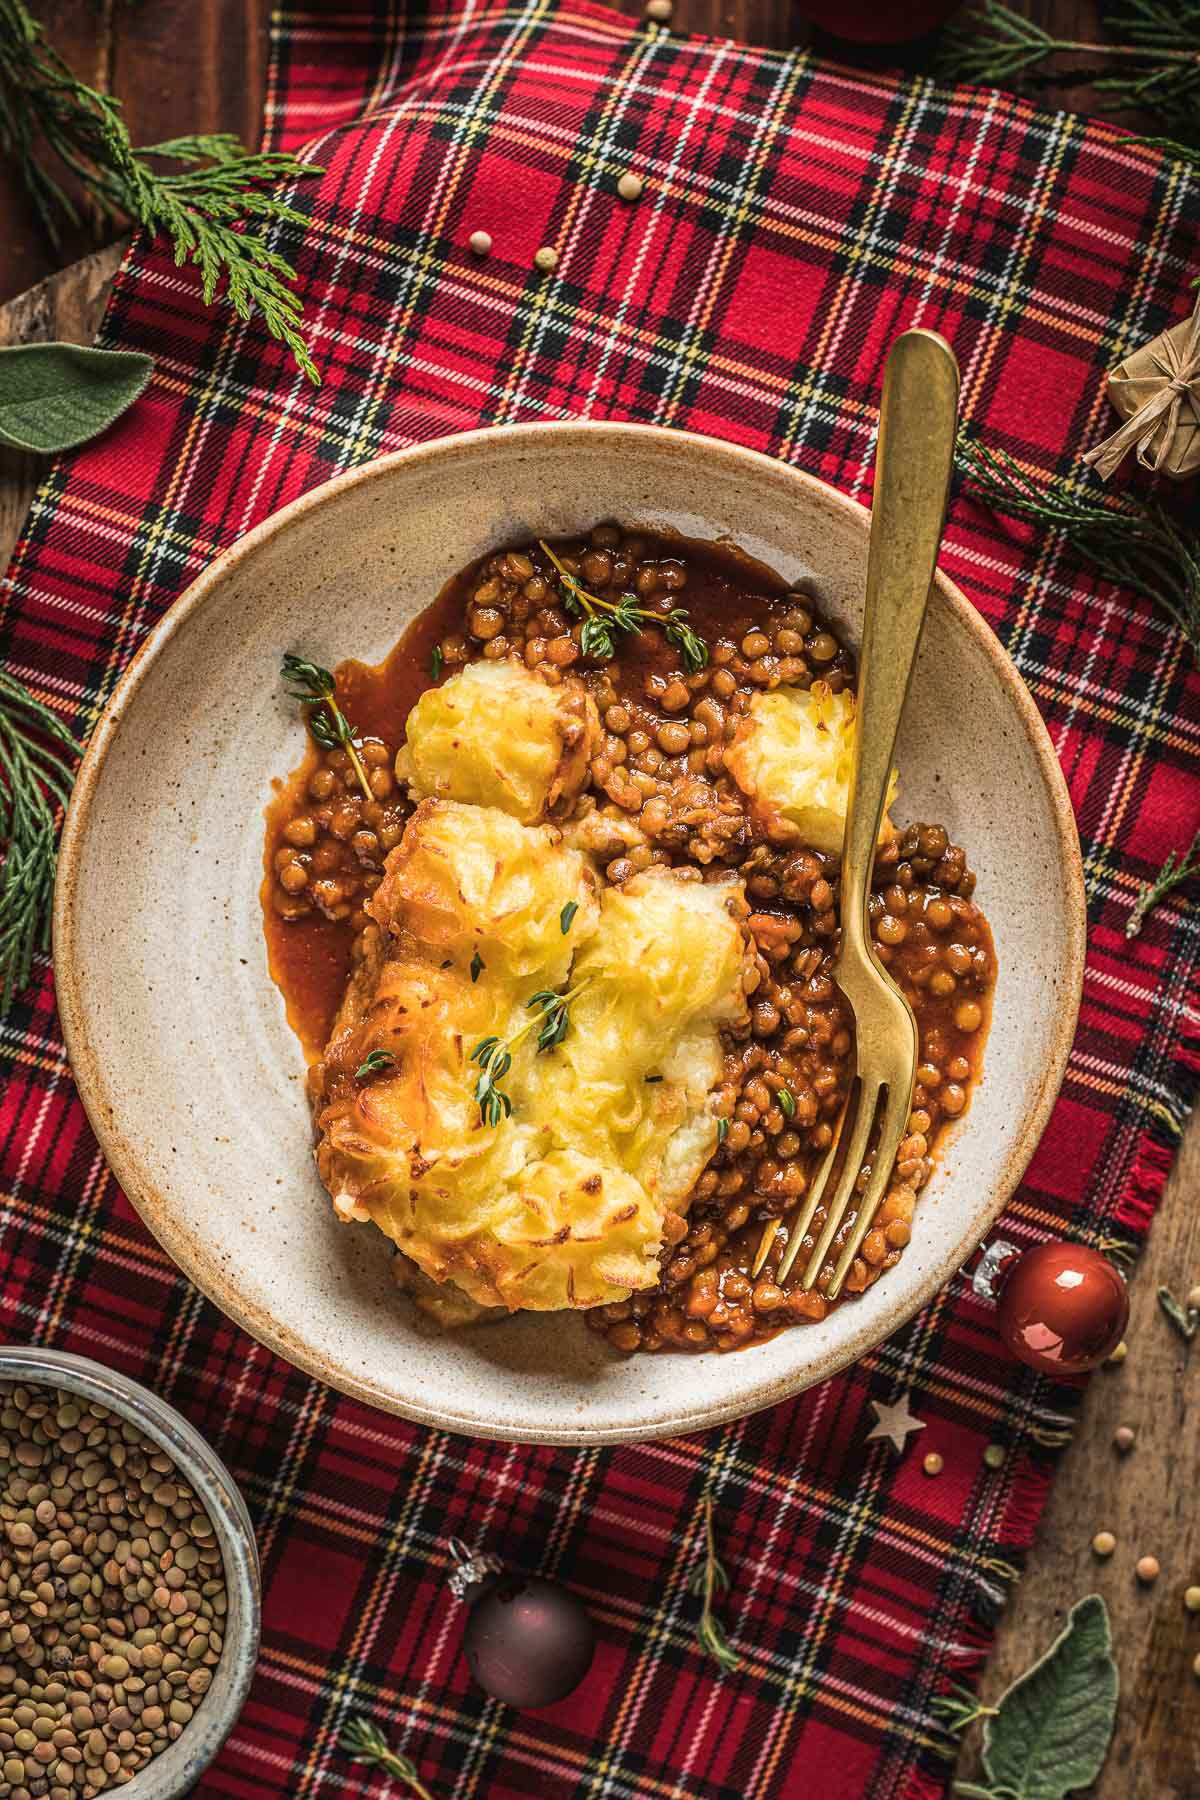 healthy Vegan Shepherd's Pie recipe with lentil ragu for Thanksgiving ricetta di Natale Shepherd's Pie vegana di lenticchie con ragù di lenticchie funghi #glutenfree